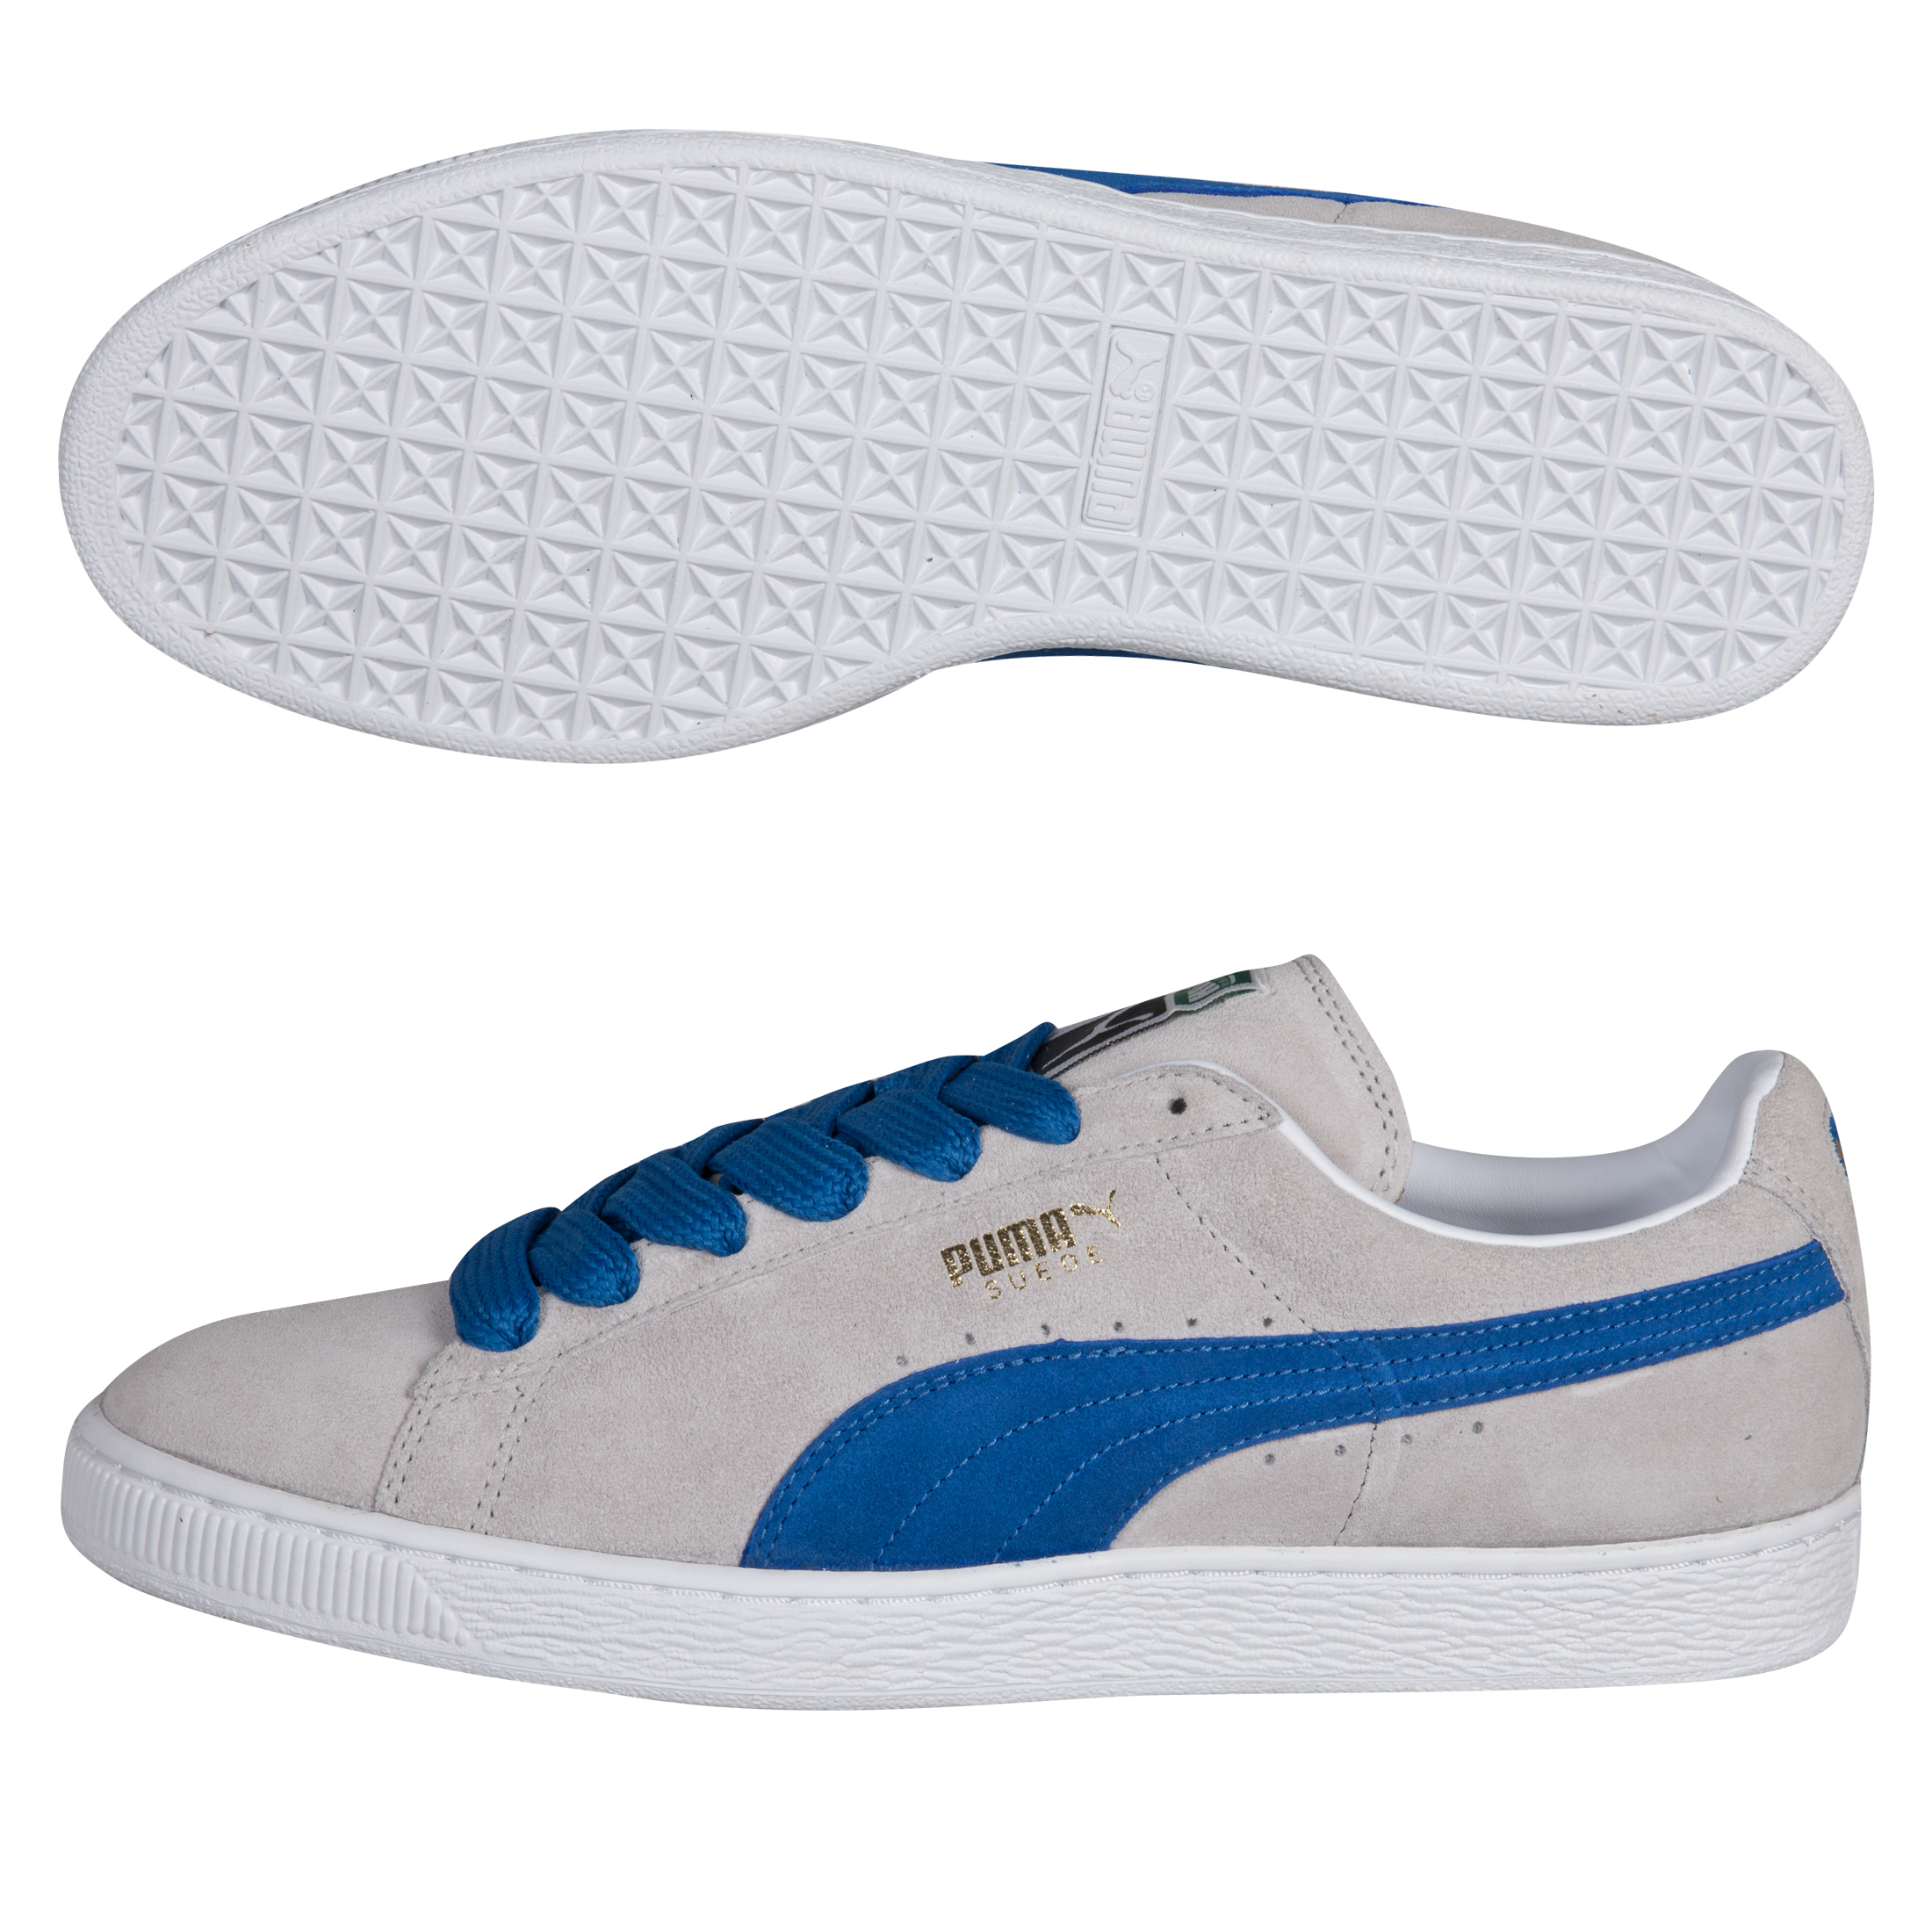 Puma Suede Classic Eco - Limestone Gray/Puma Royal